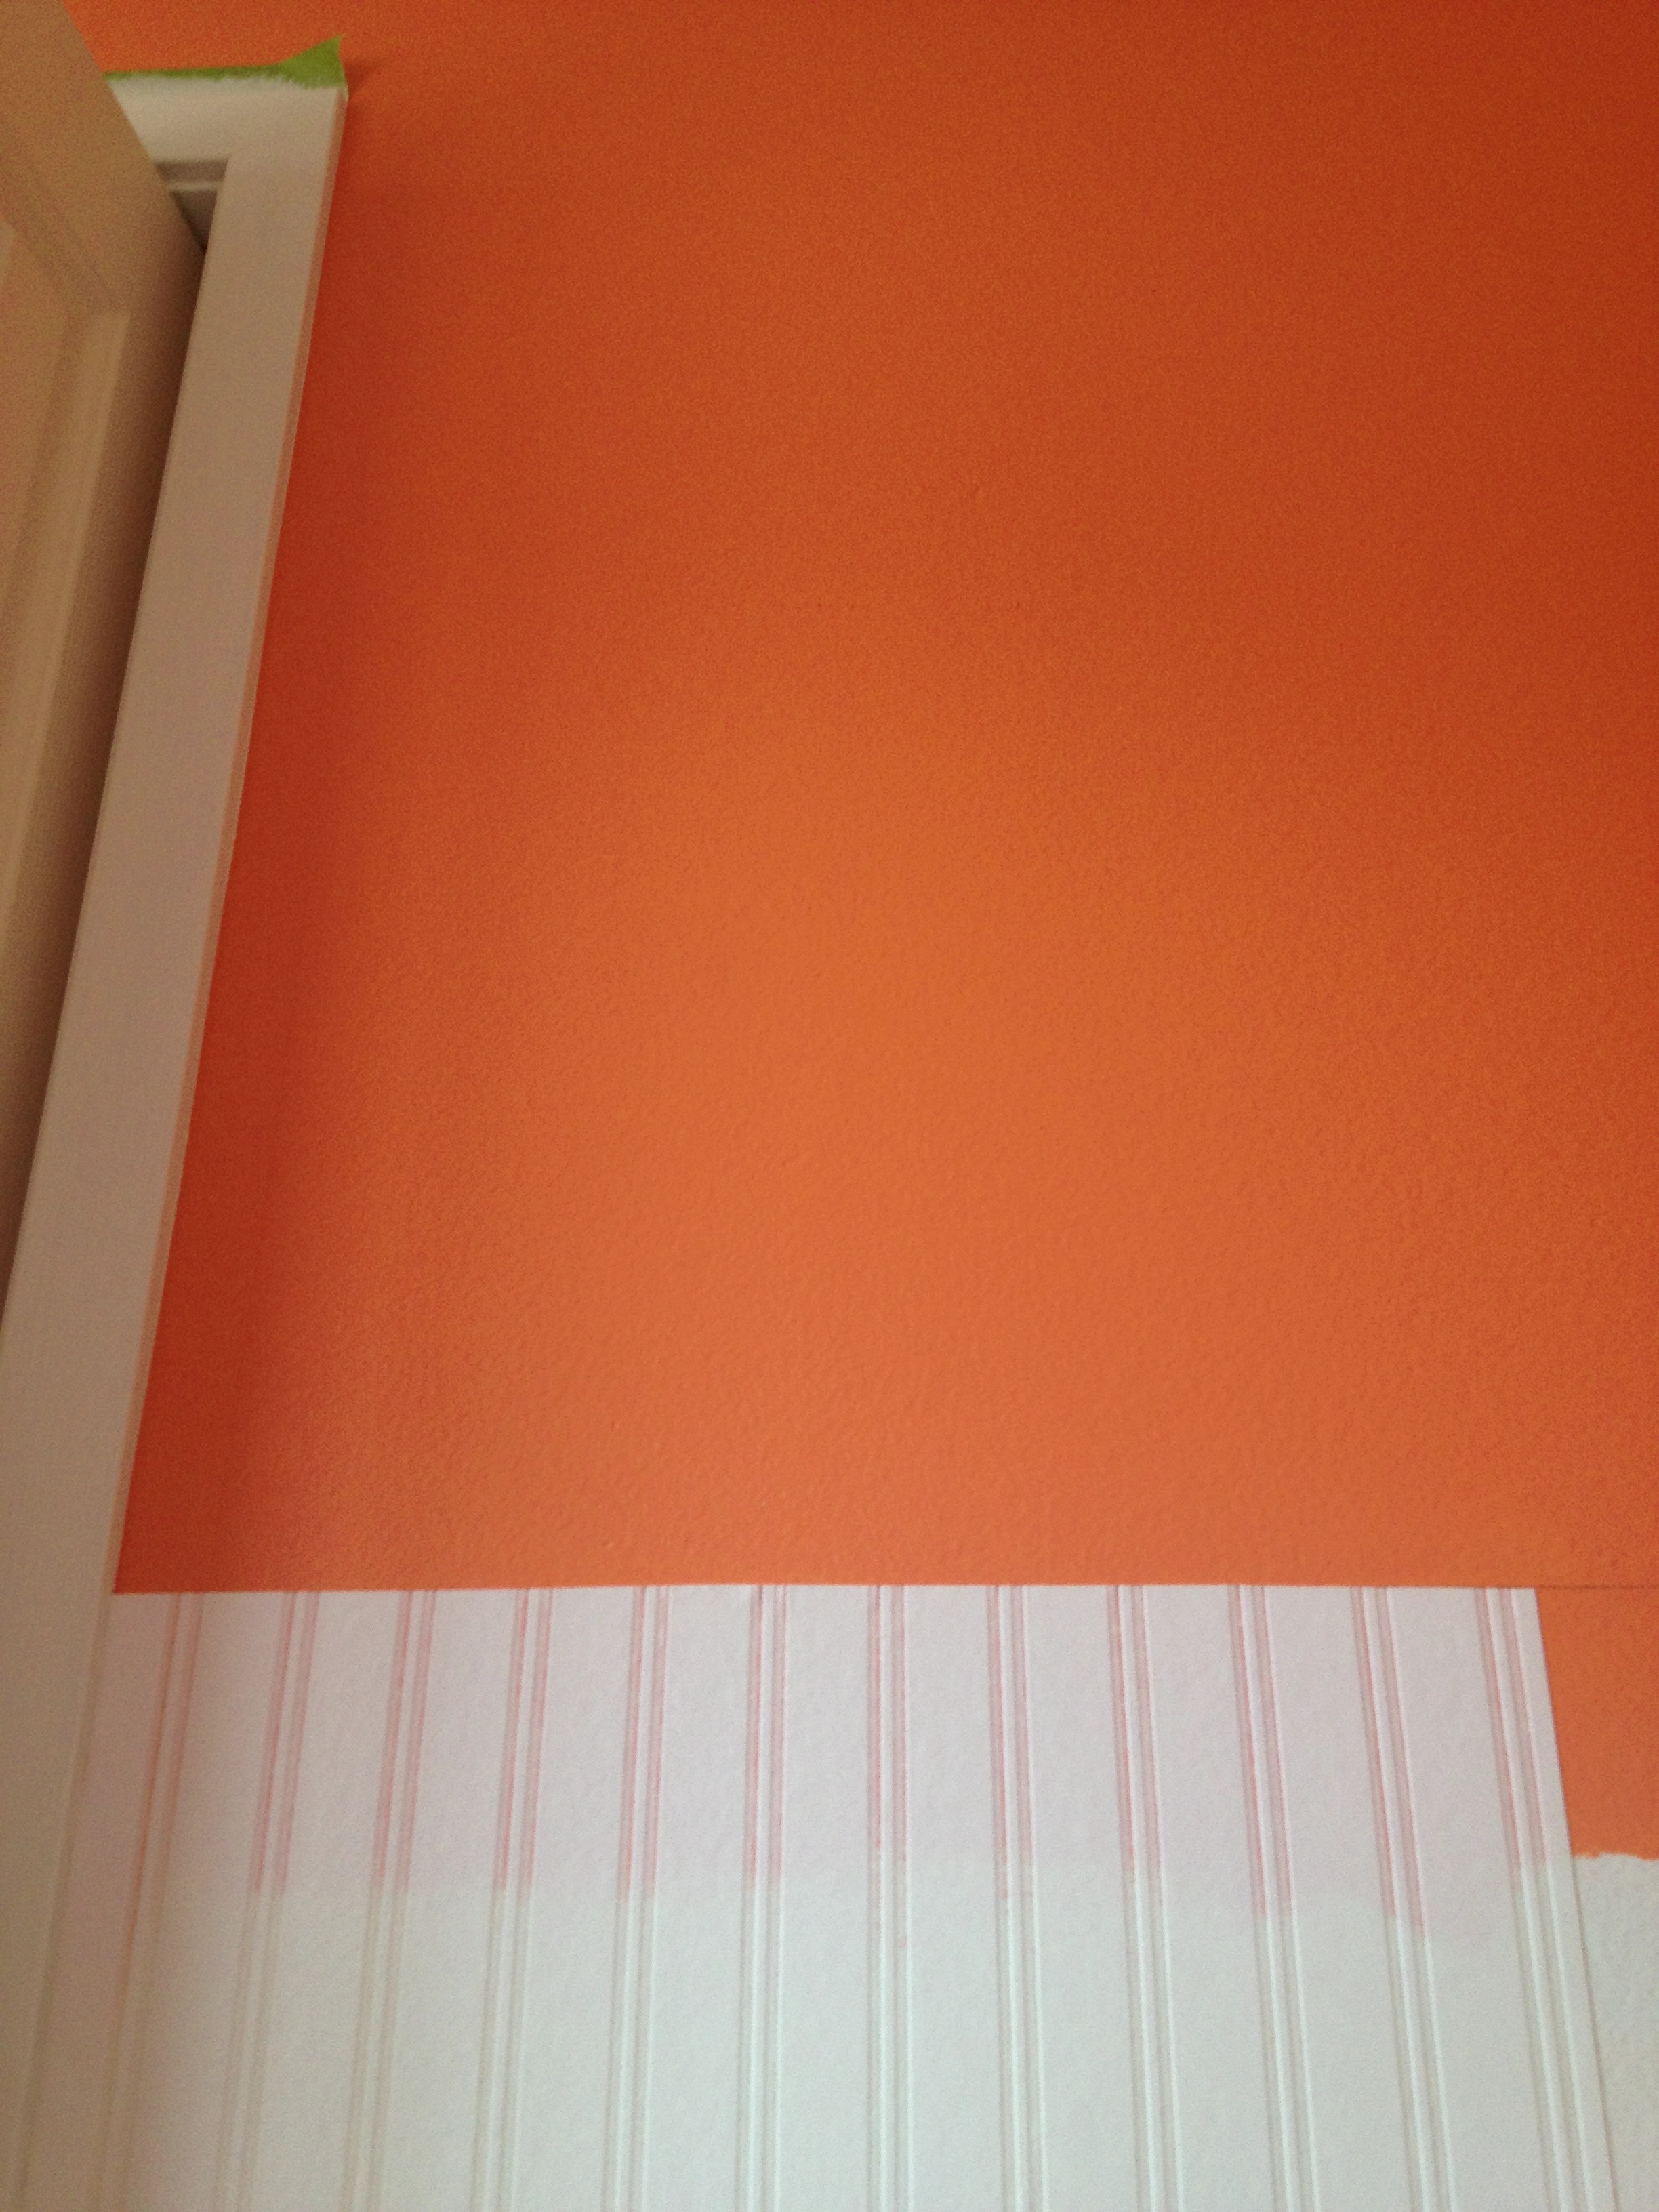 Renovating the orange wall using white Wall Doctor Beadboard Wallpaper to get prettier look